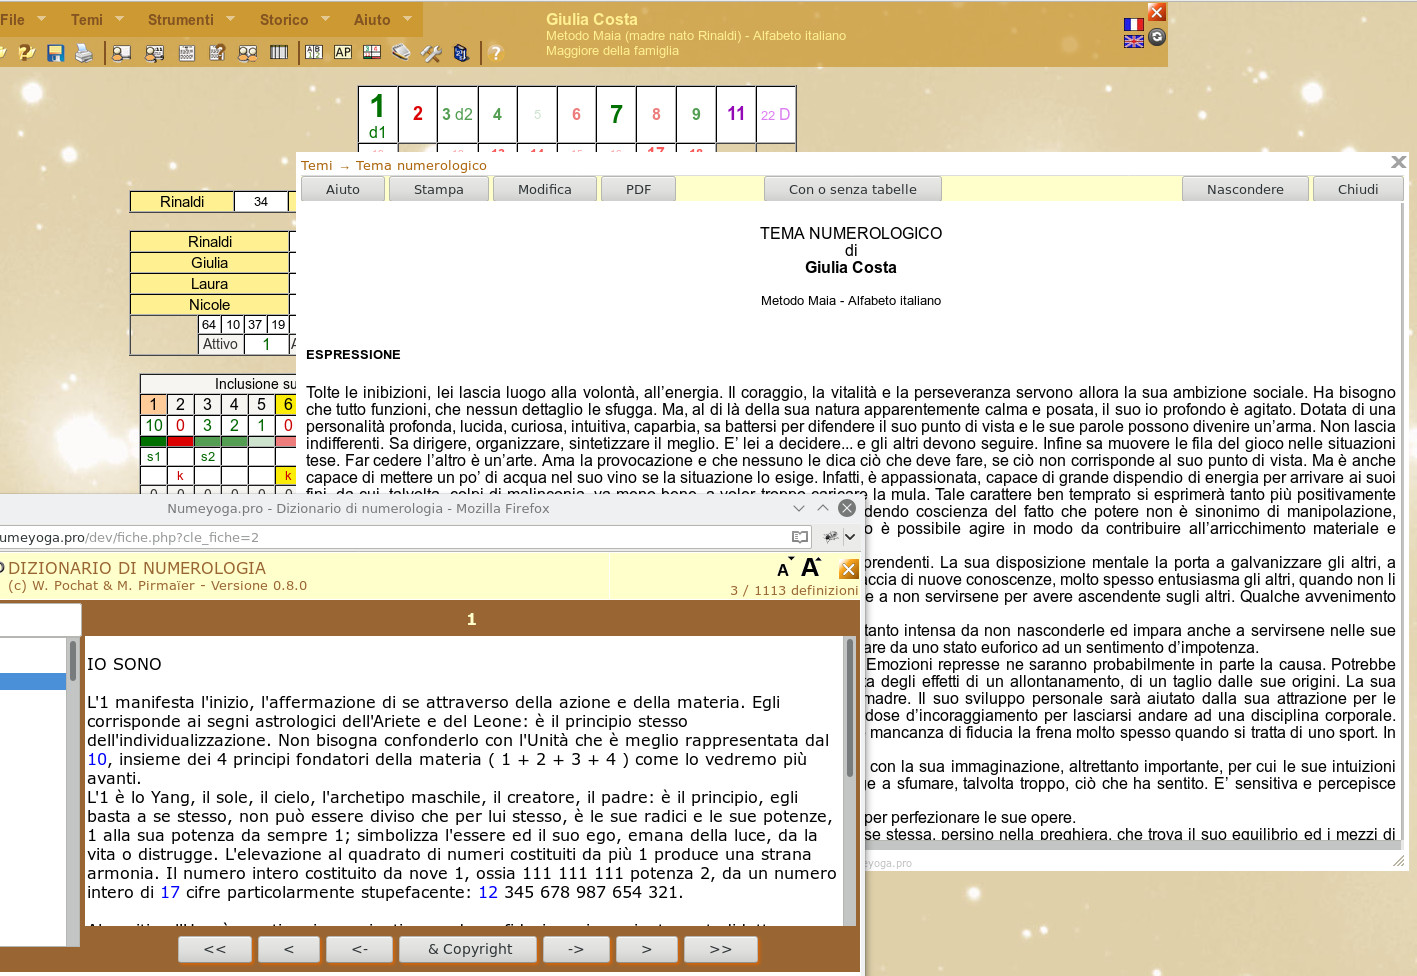 Online Numerologia Software